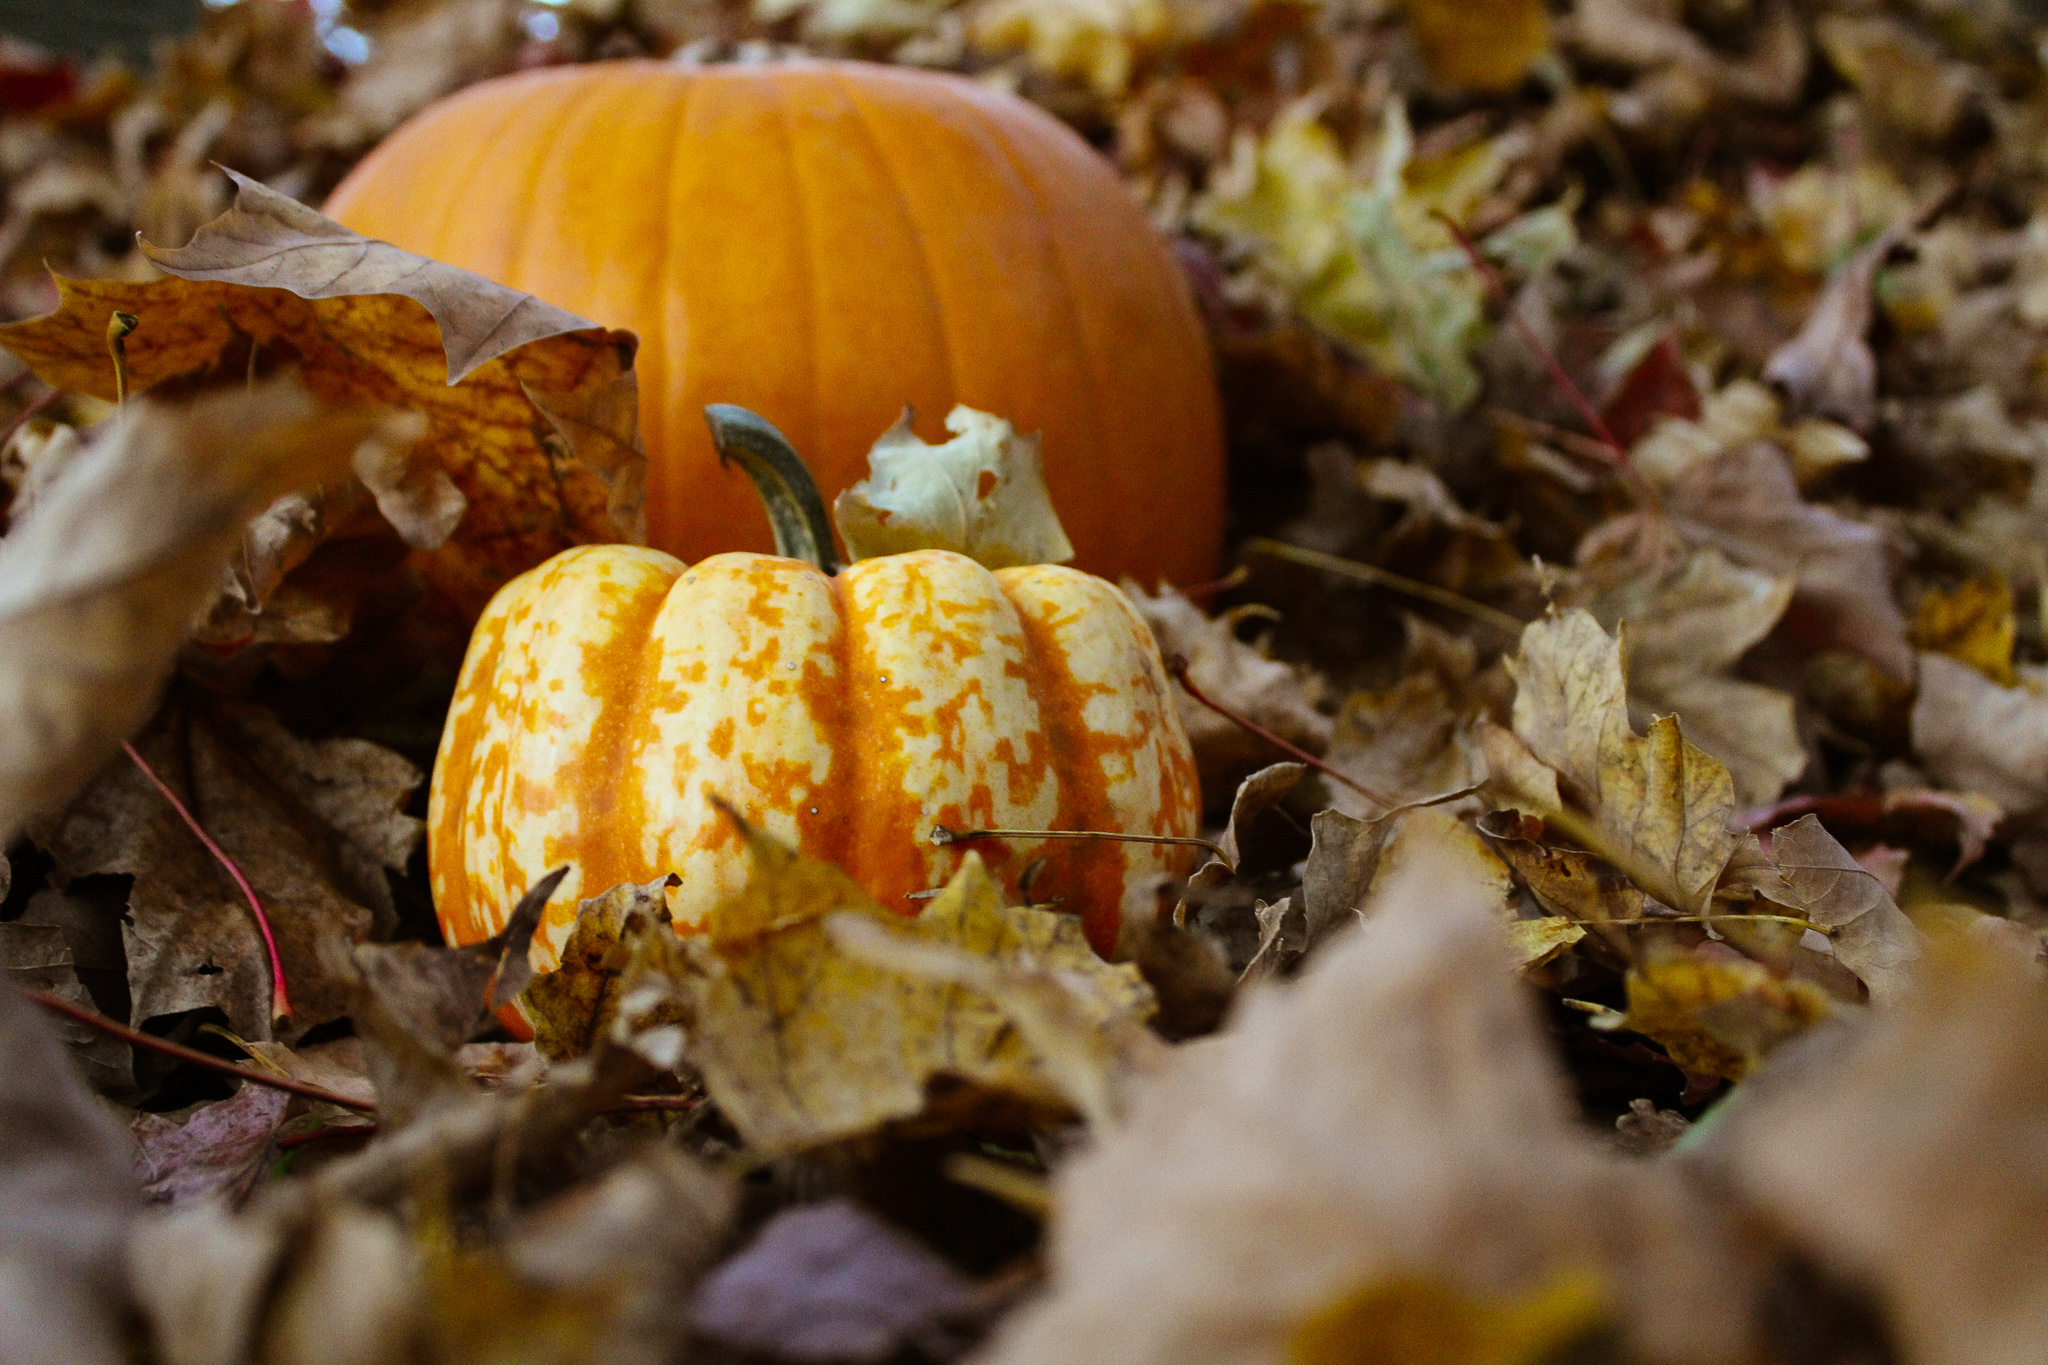 Duluth has many different events happening during the Halloween season. Photo by Morgan Pint